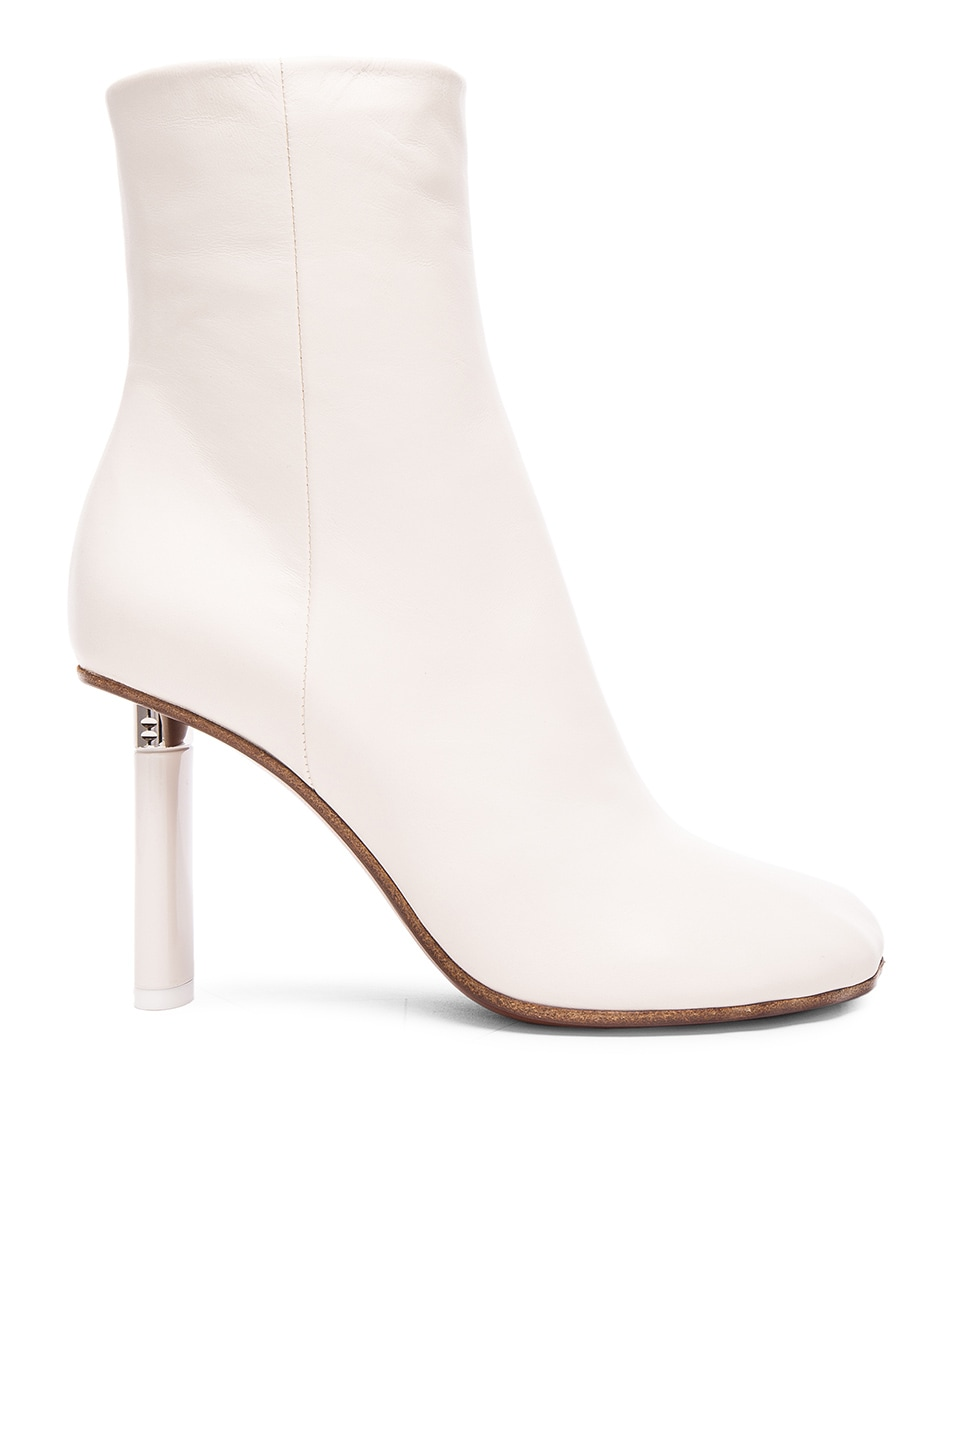 Image 1 of VETEMENTS Leather Ankle Boots in White